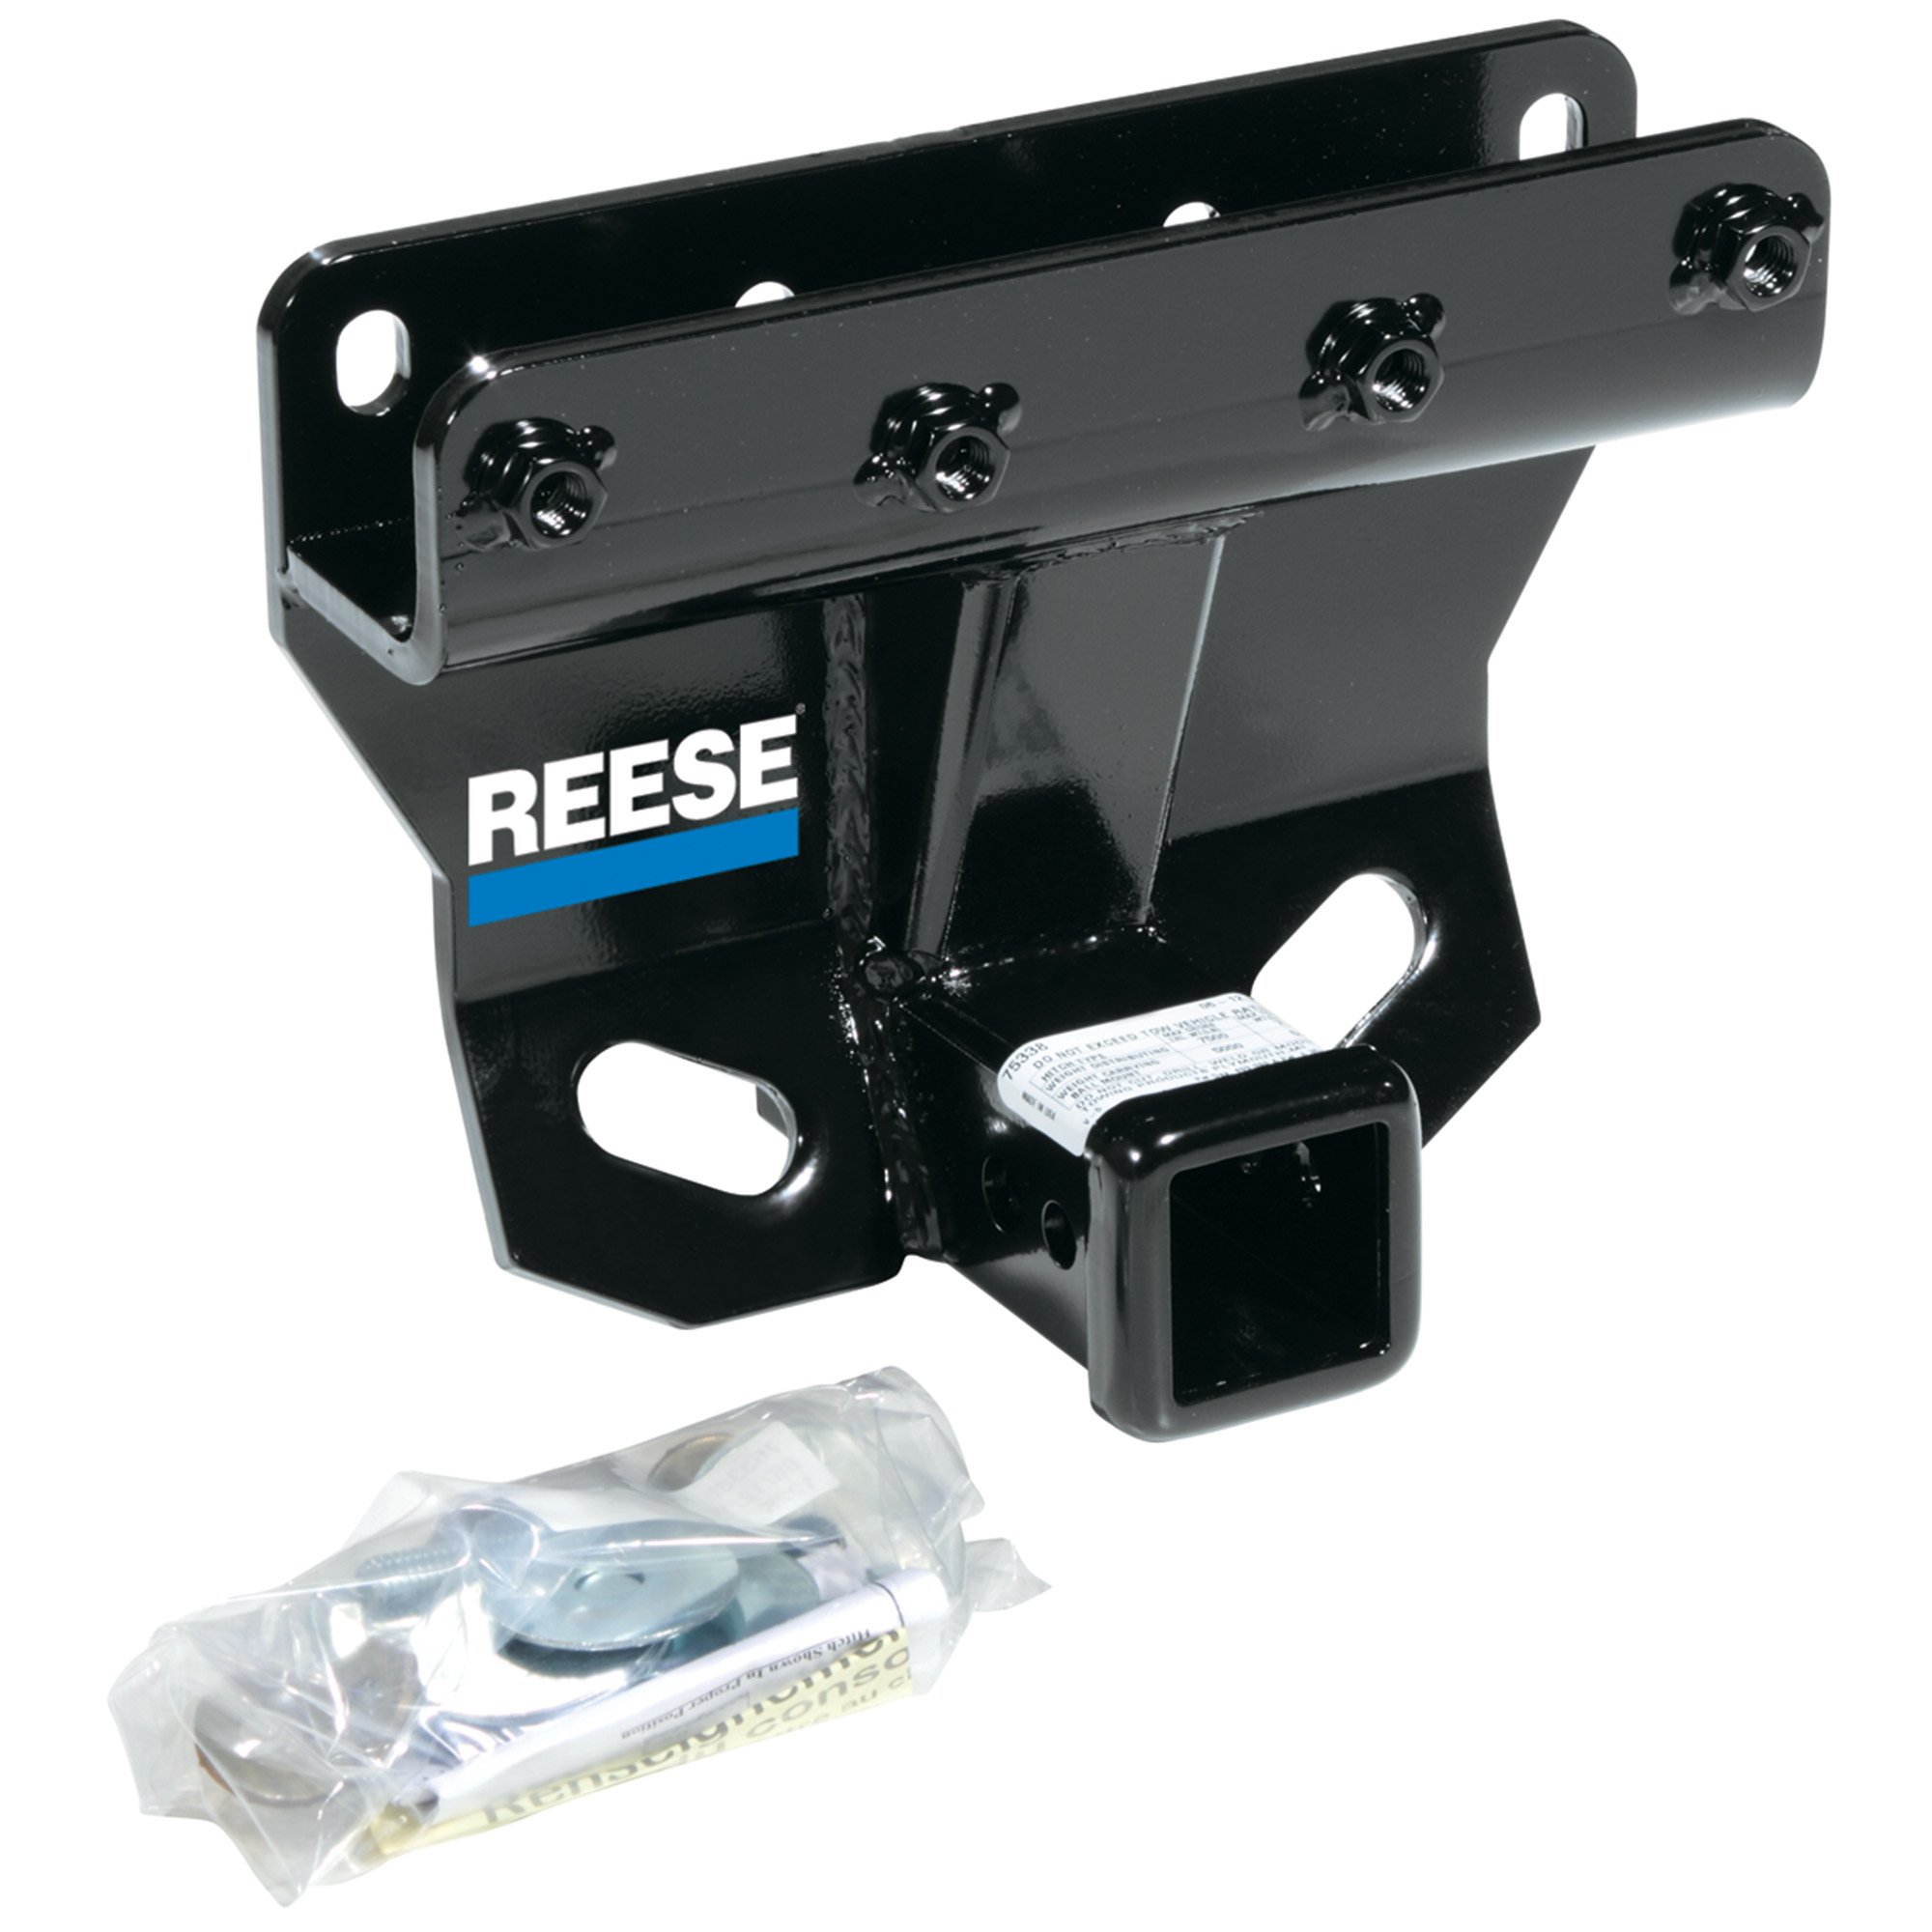 Reese 44748 Class III-IV Custom-Fit Hitch with 2'' Square Receiver opening, includes Hitch Plug Cover by Reese Towpower